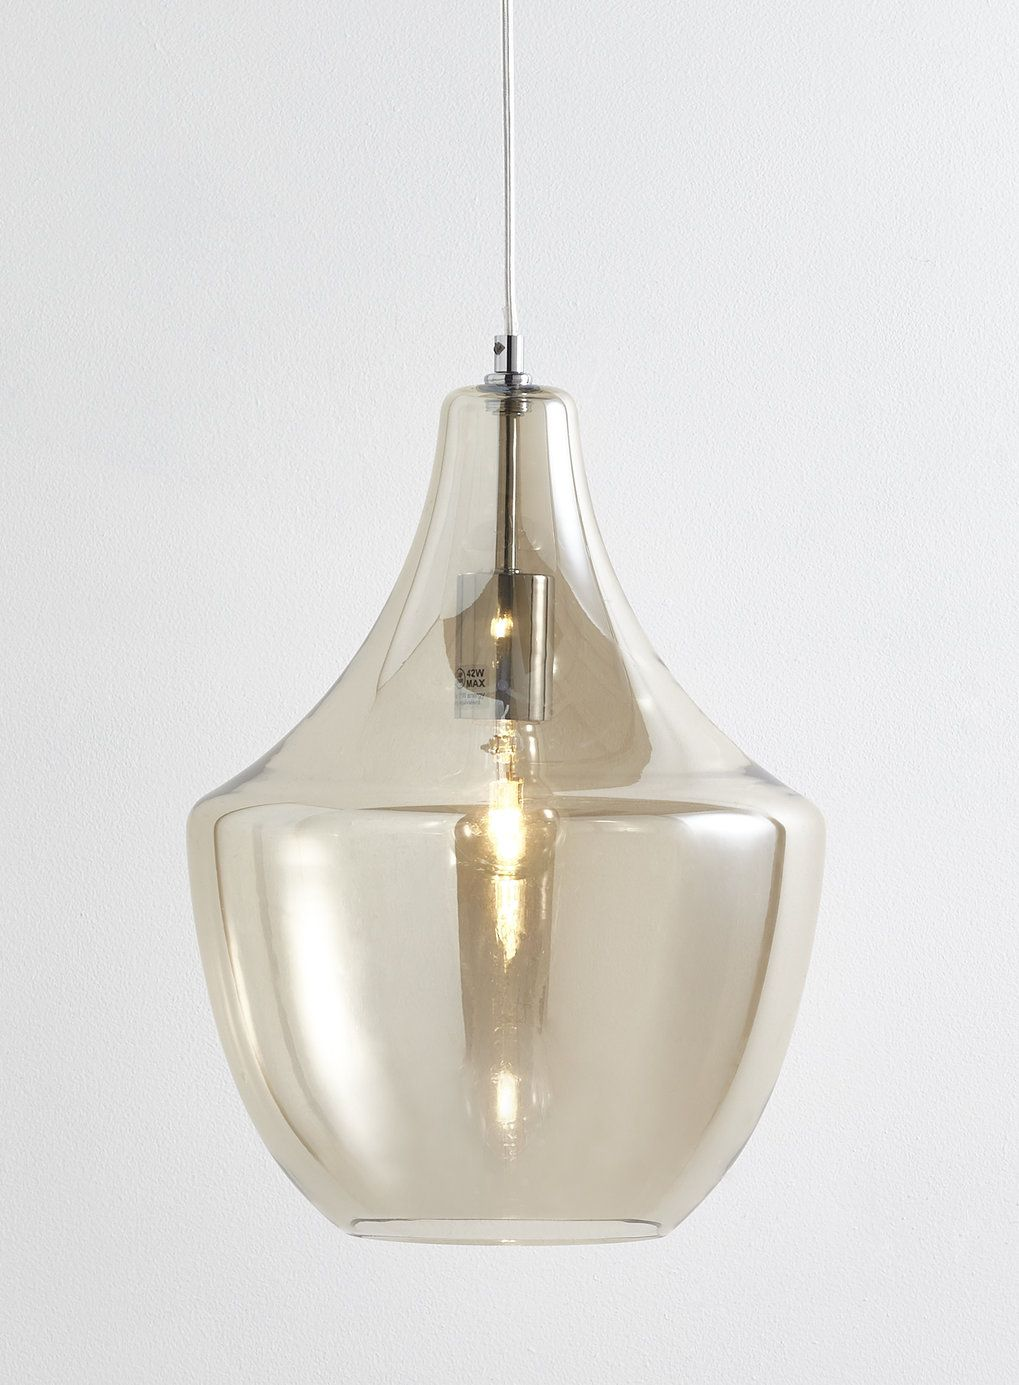 Cara pendant ceiling light bhs kitchen pinterest cara pendant ceiling light bhs mozeypictures Image collections